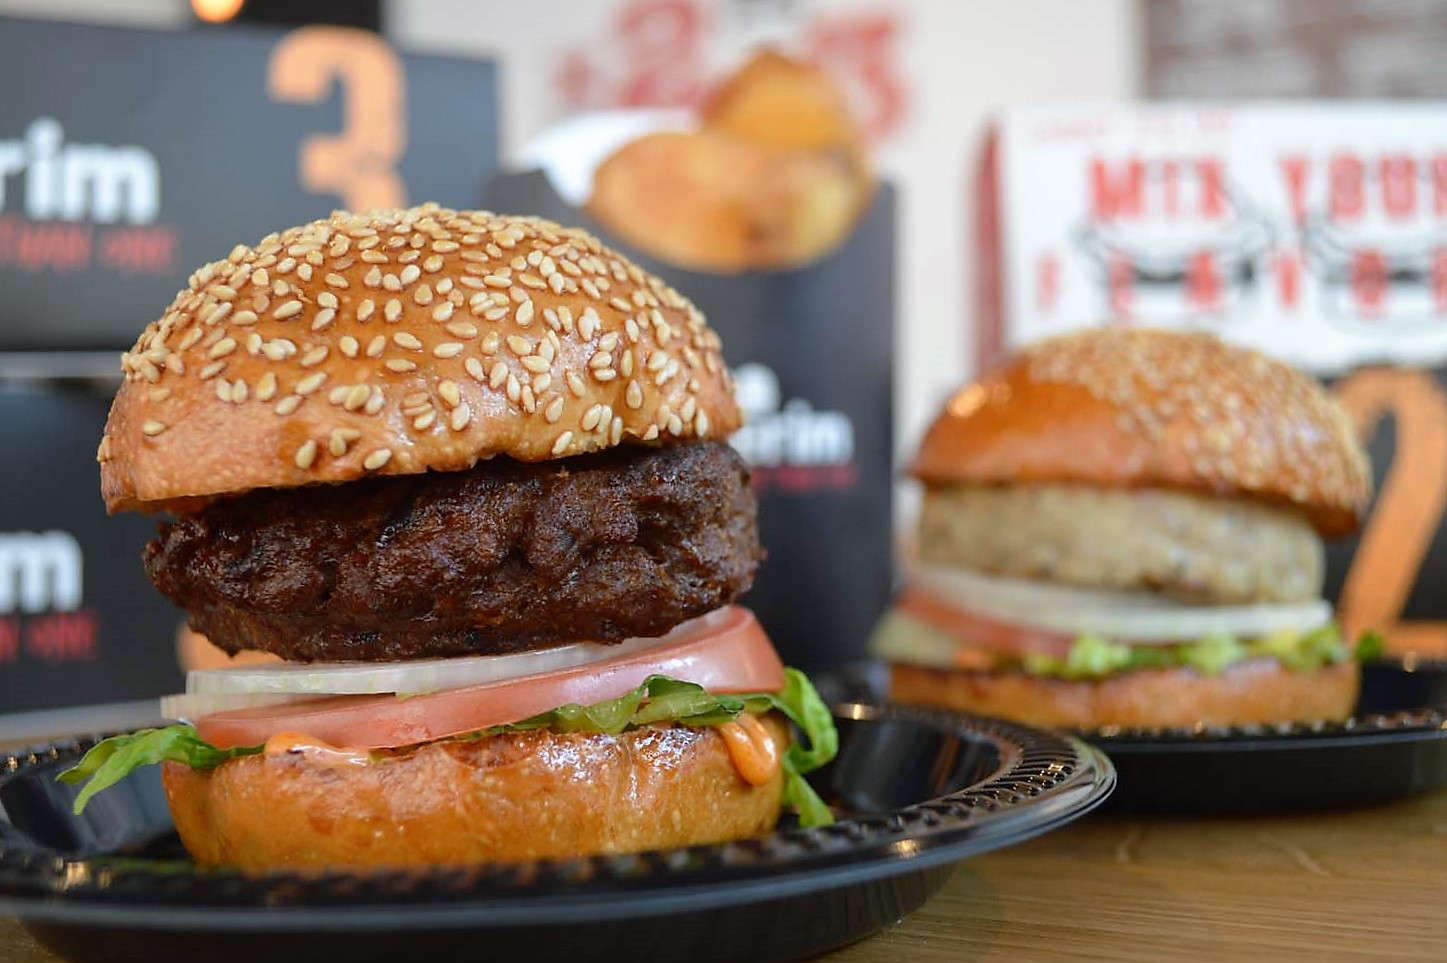 GOURMET FAST FOOD BURGERS THAT WILL HAVE YOU ALWAYS NEEDING MORE THAN ONE @ BURGERIM - MELROSE (LA)